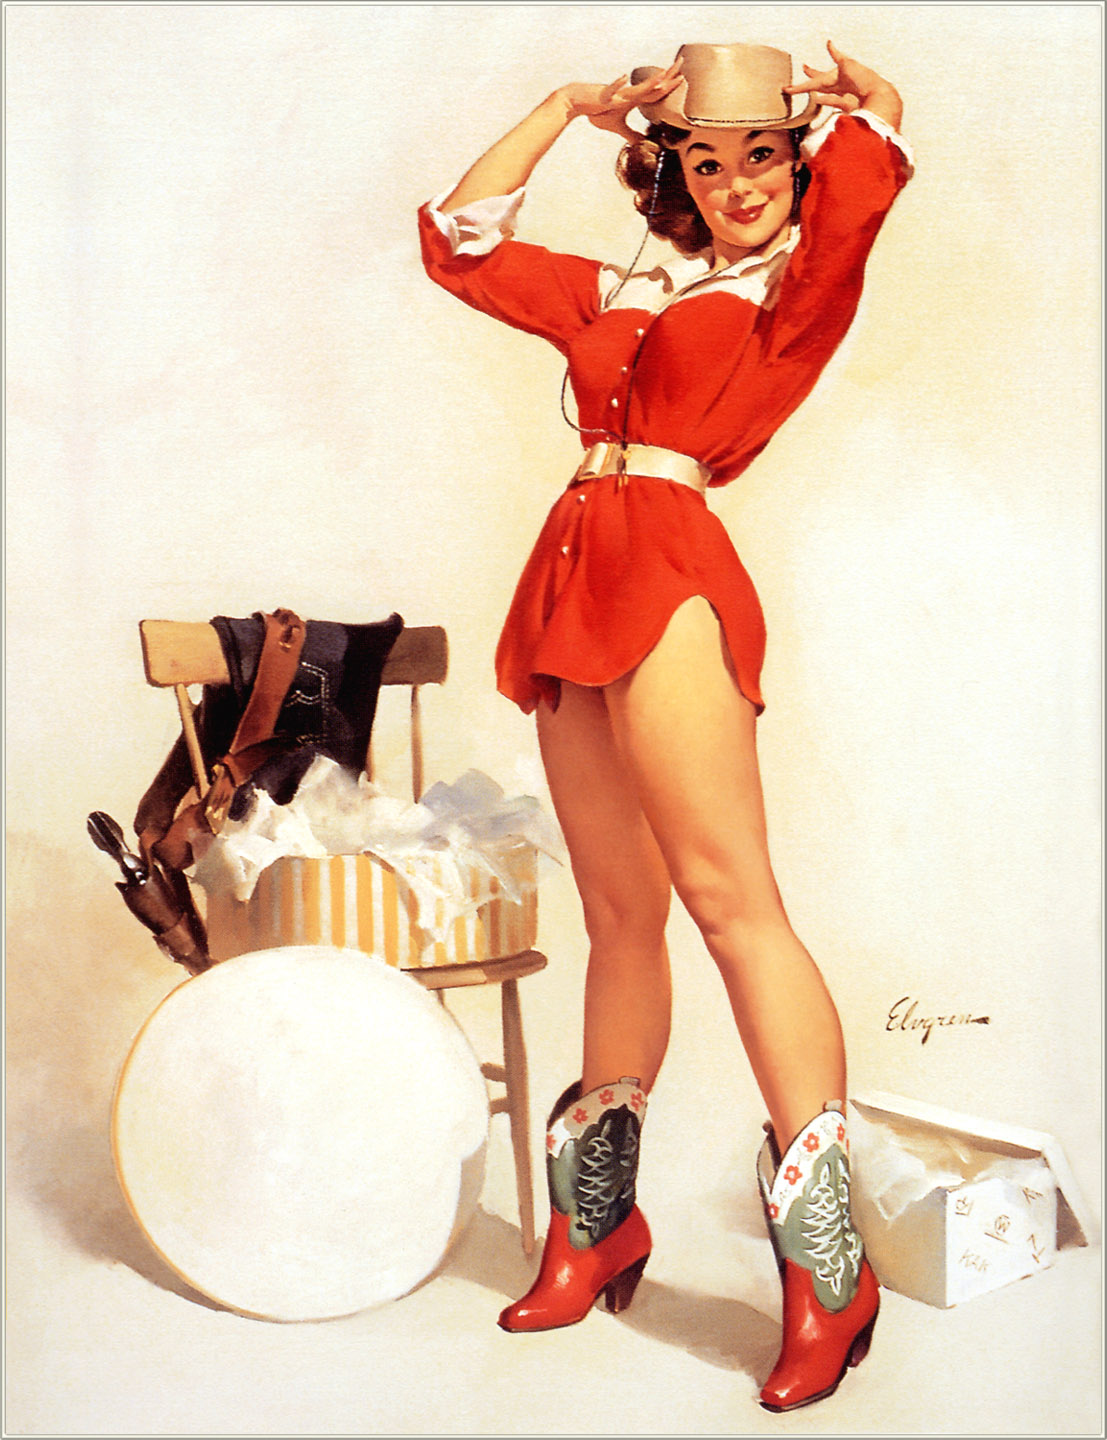 Japan Pin Up Art http://thepinupart.blogspot.com/2012/07/pin-up-in-red.html